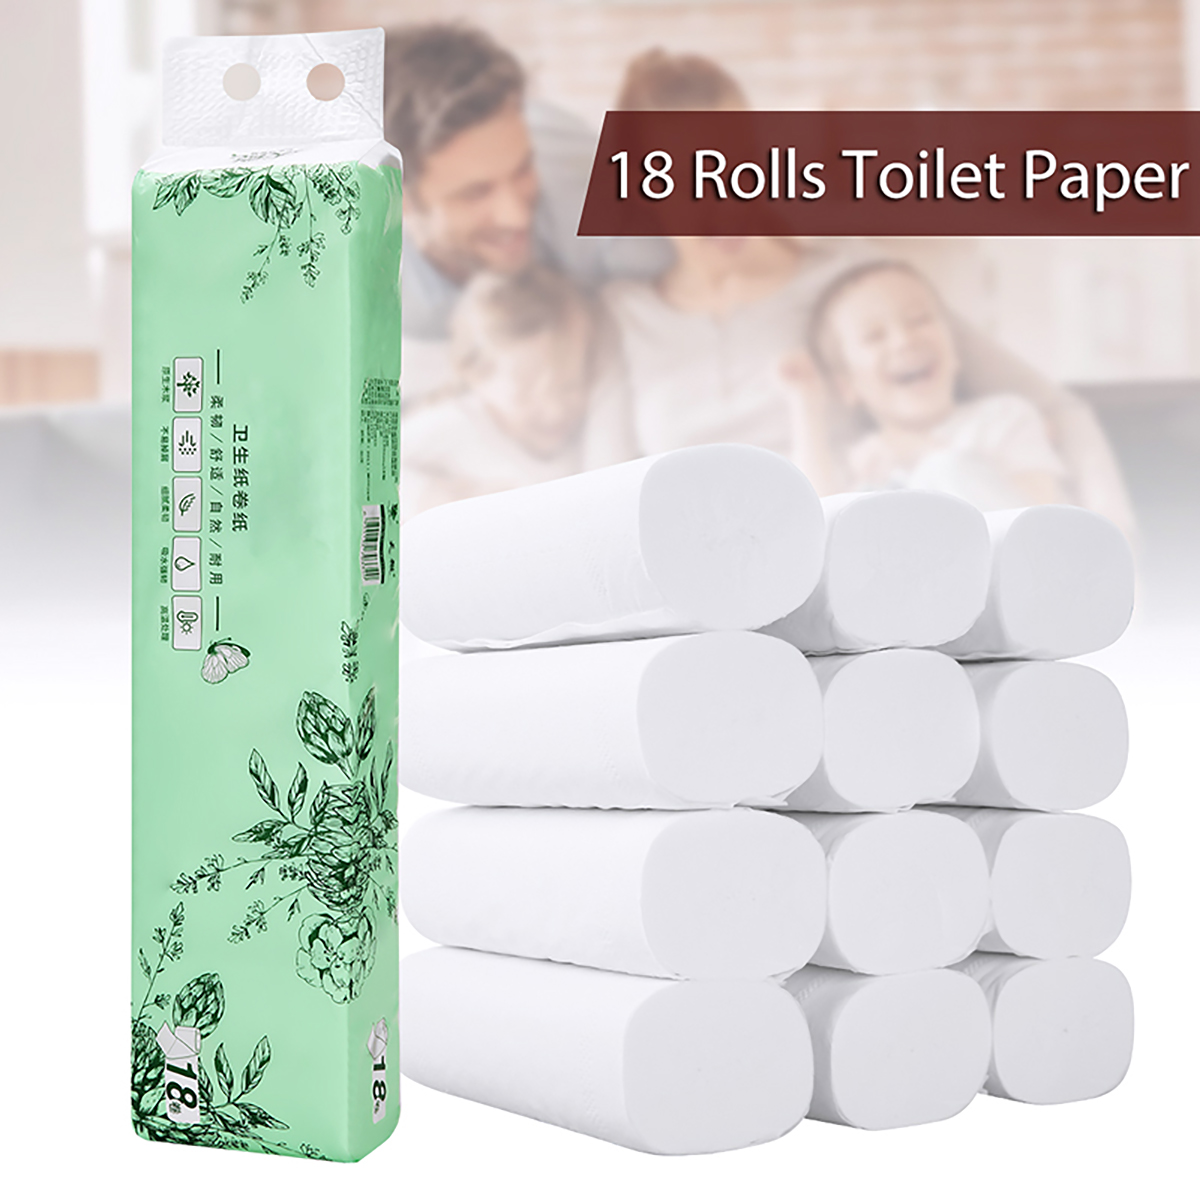 18 Rolls Natural Wood Pulp Toilet Paper White 4Ply Bulk Tissue Household Bathroom Coreless Roll Toilet Tissue